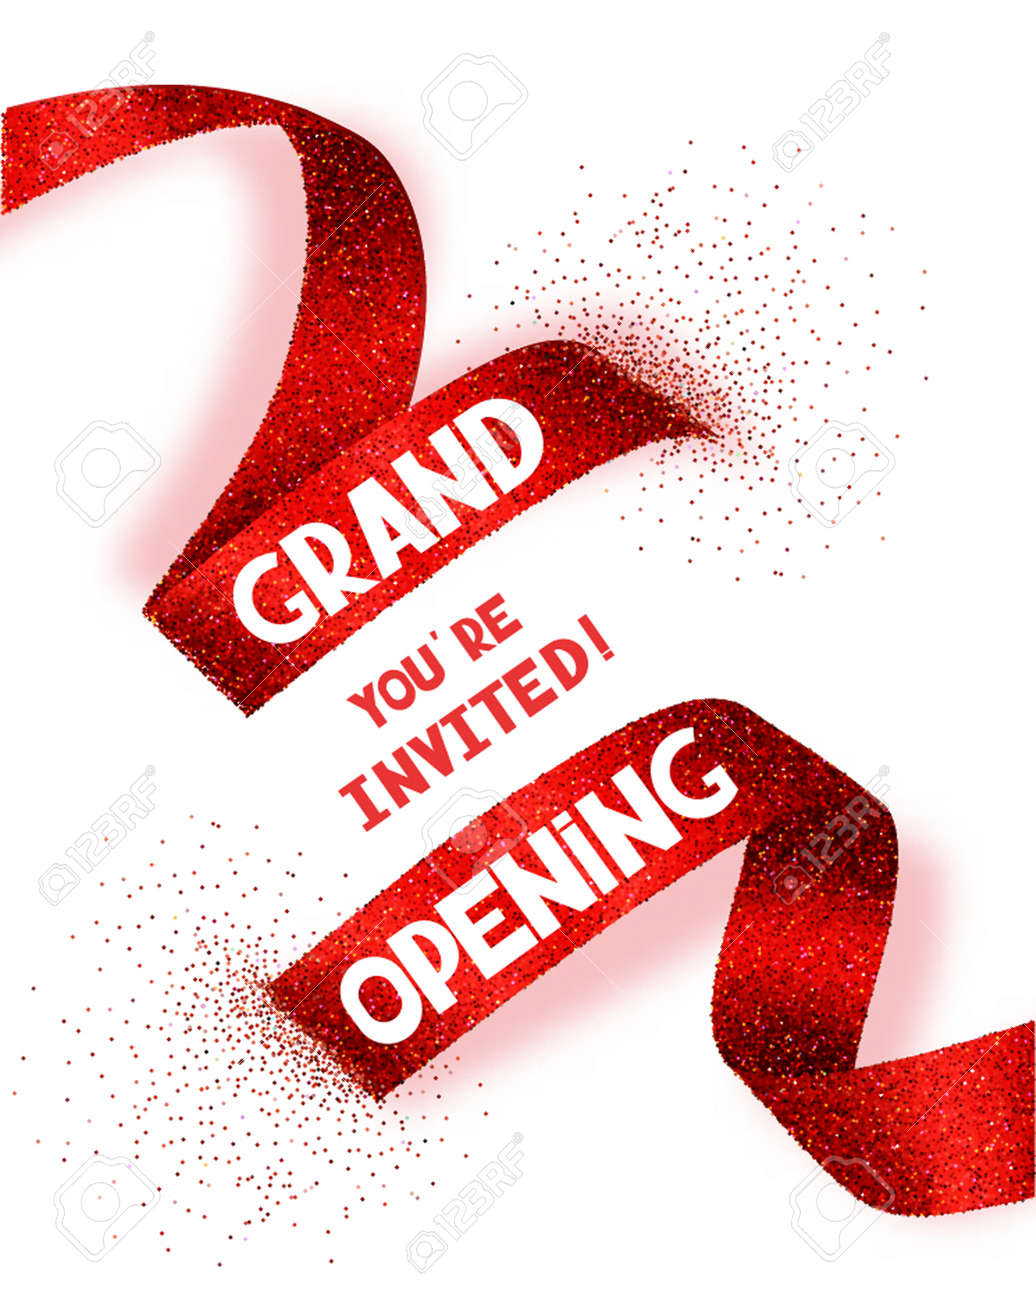 Grand Opening card with abstract red ribbon - 58724685